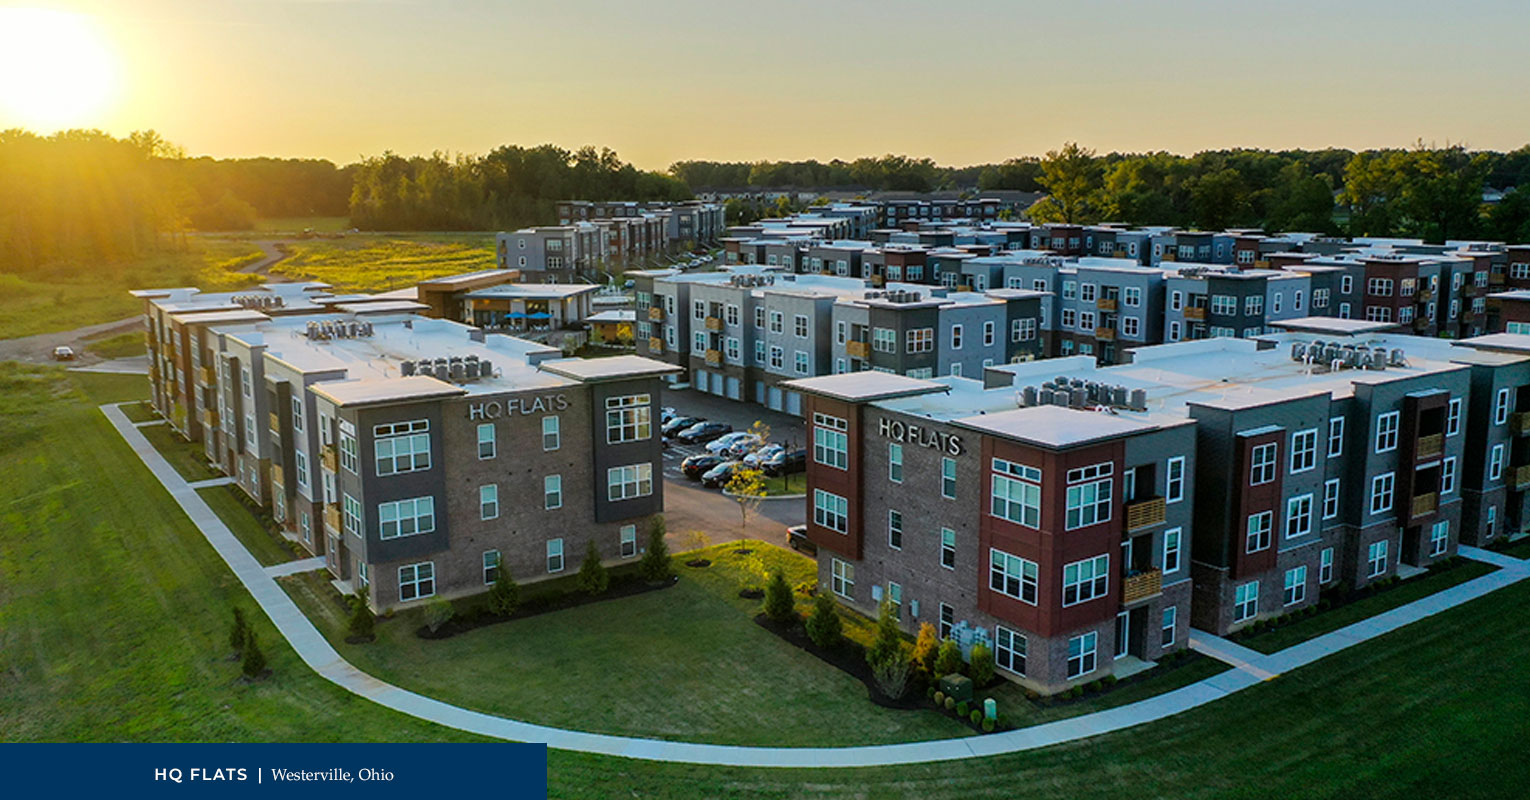 HQ Flats | Westerville, Ohio